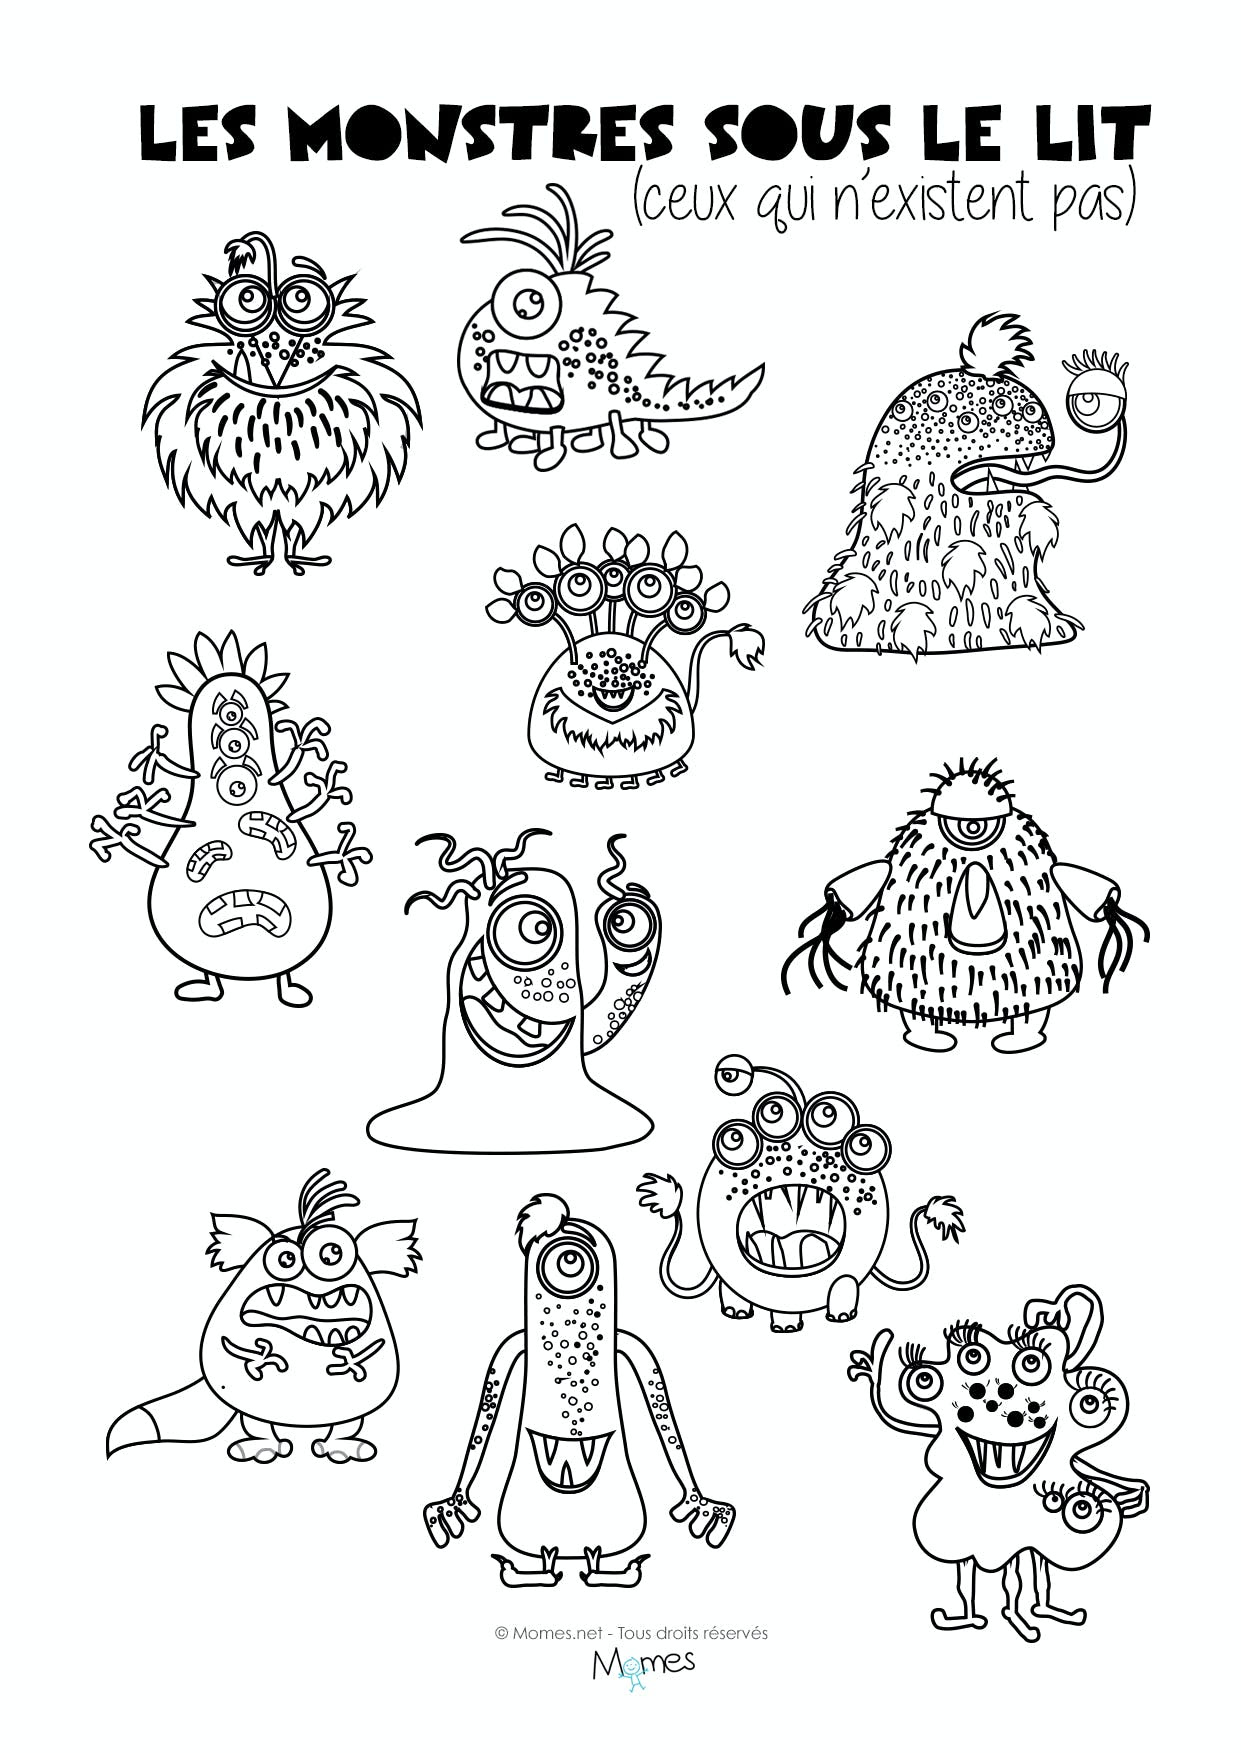 Coloriage Monstre Colorier Les Enfants Marnfozinecom